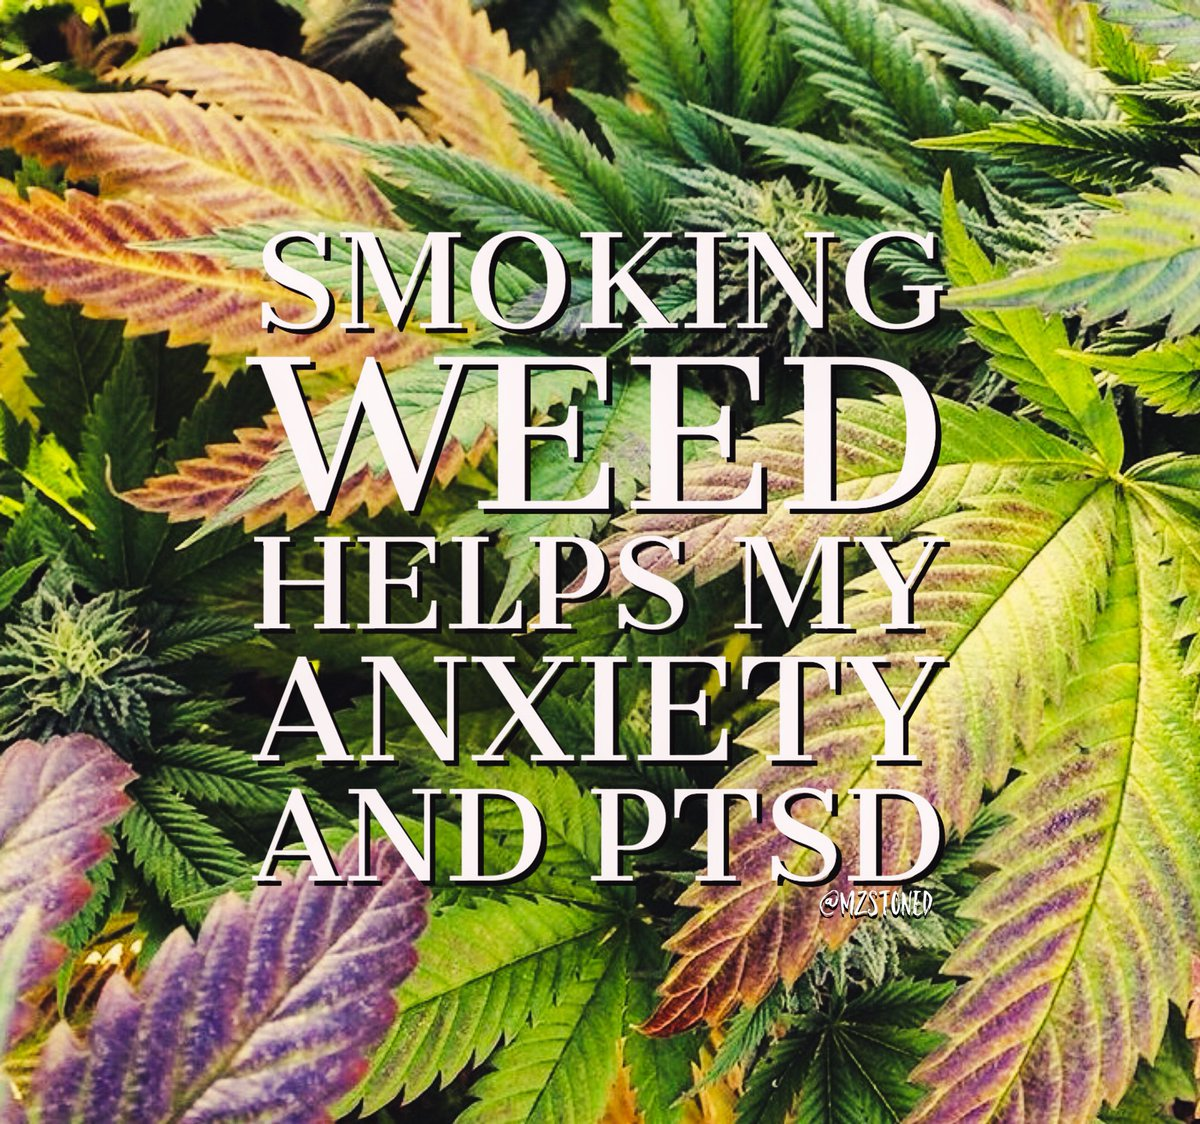 """mz stoned✨ on twitter: """"smoking weed helps my anxiety and ptsd"""